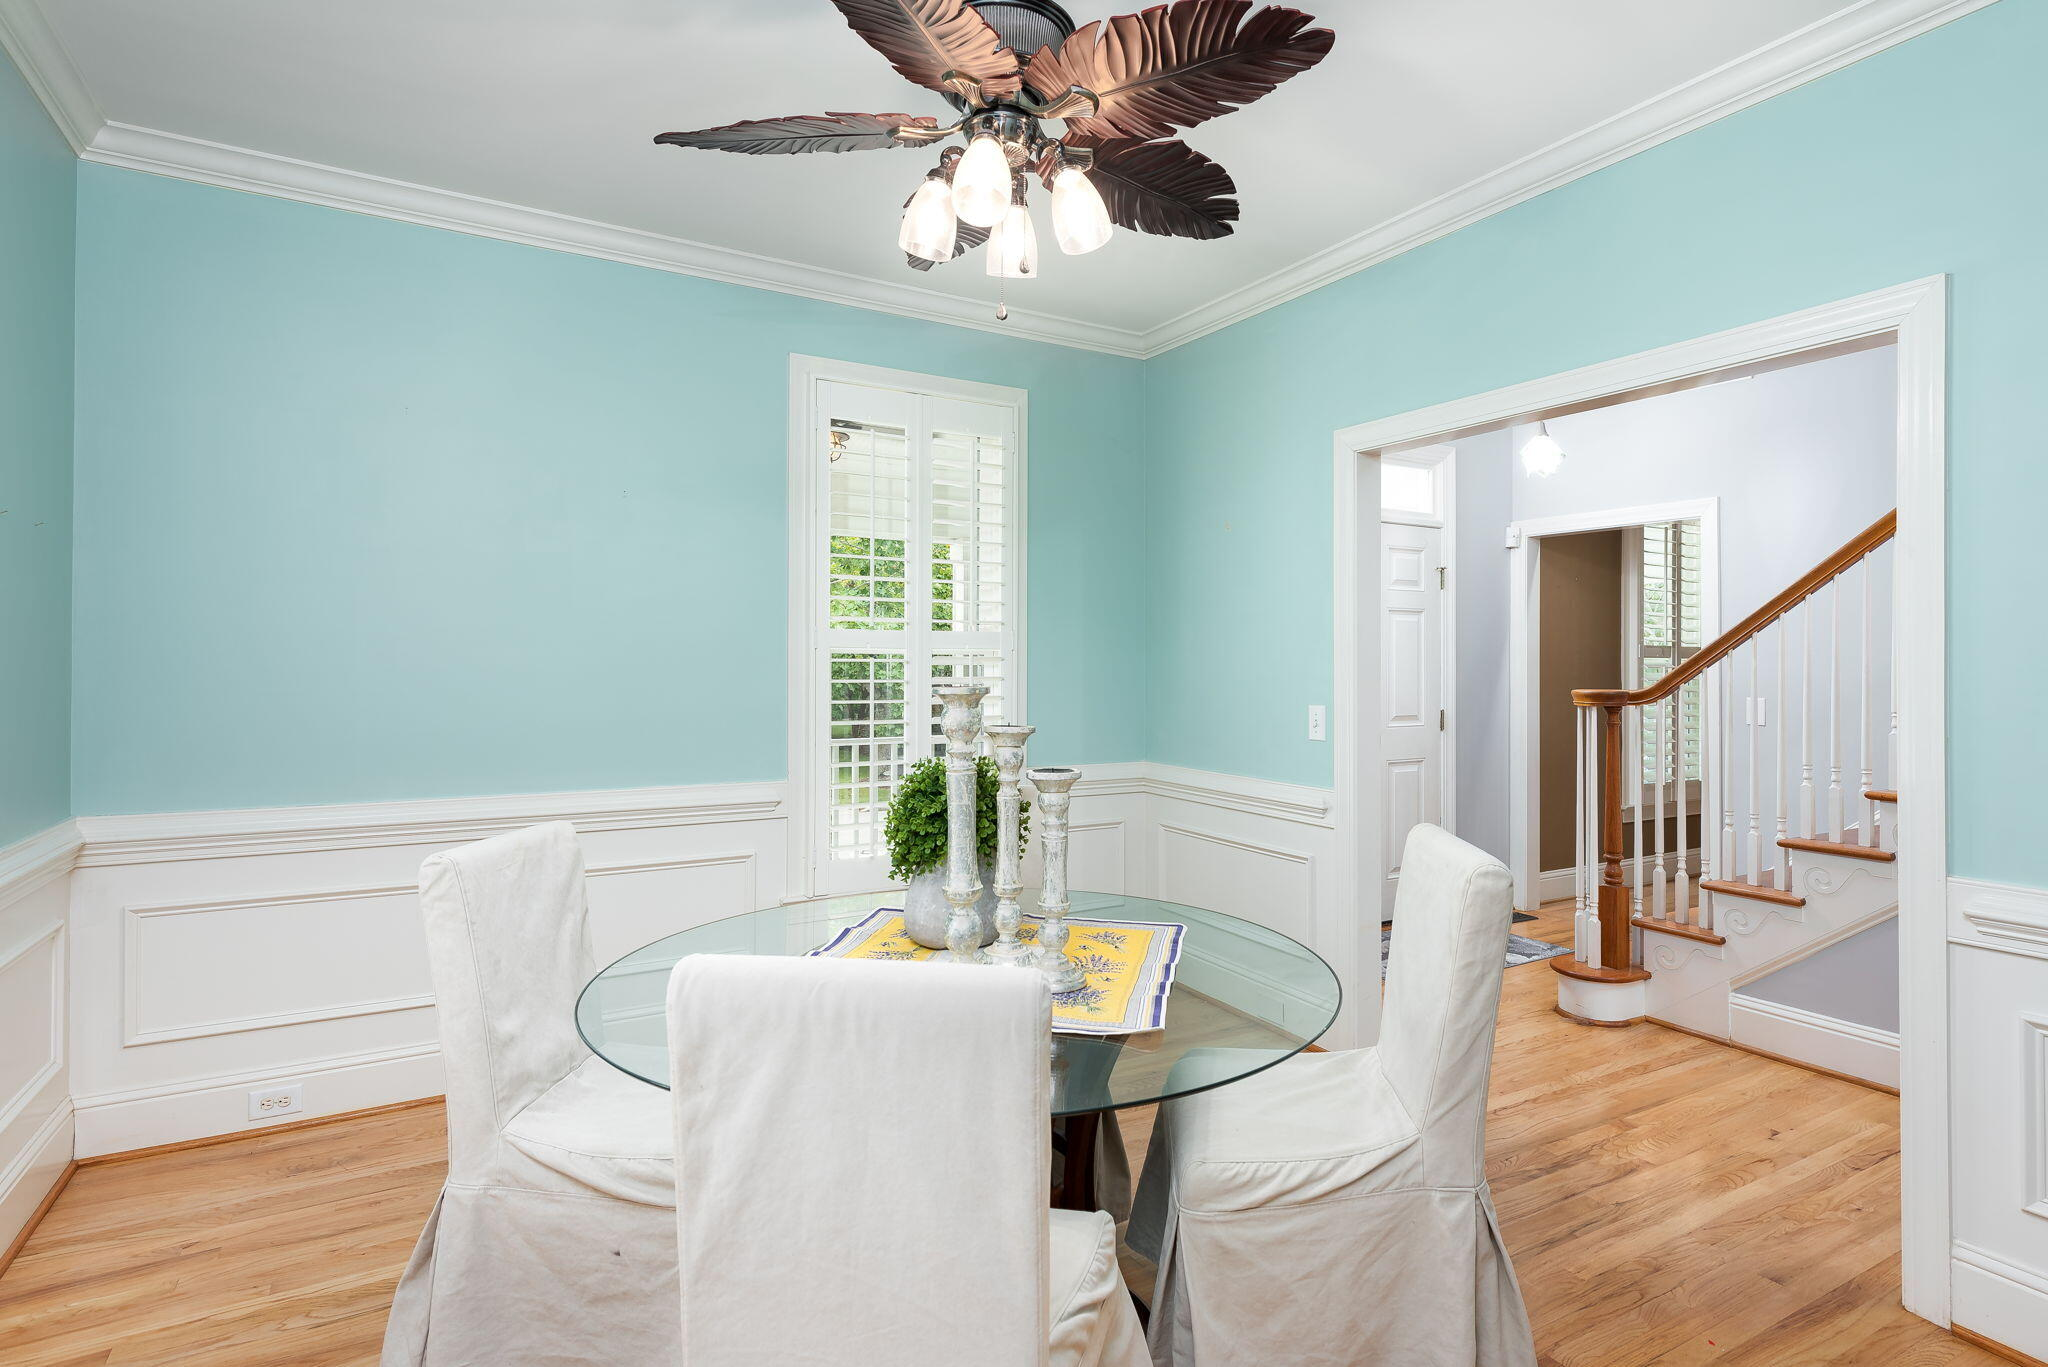 Rivertowne On The Wando Homes For Sale - 2301 Hartfords Bluff, Mount Pleasant, SC - 1